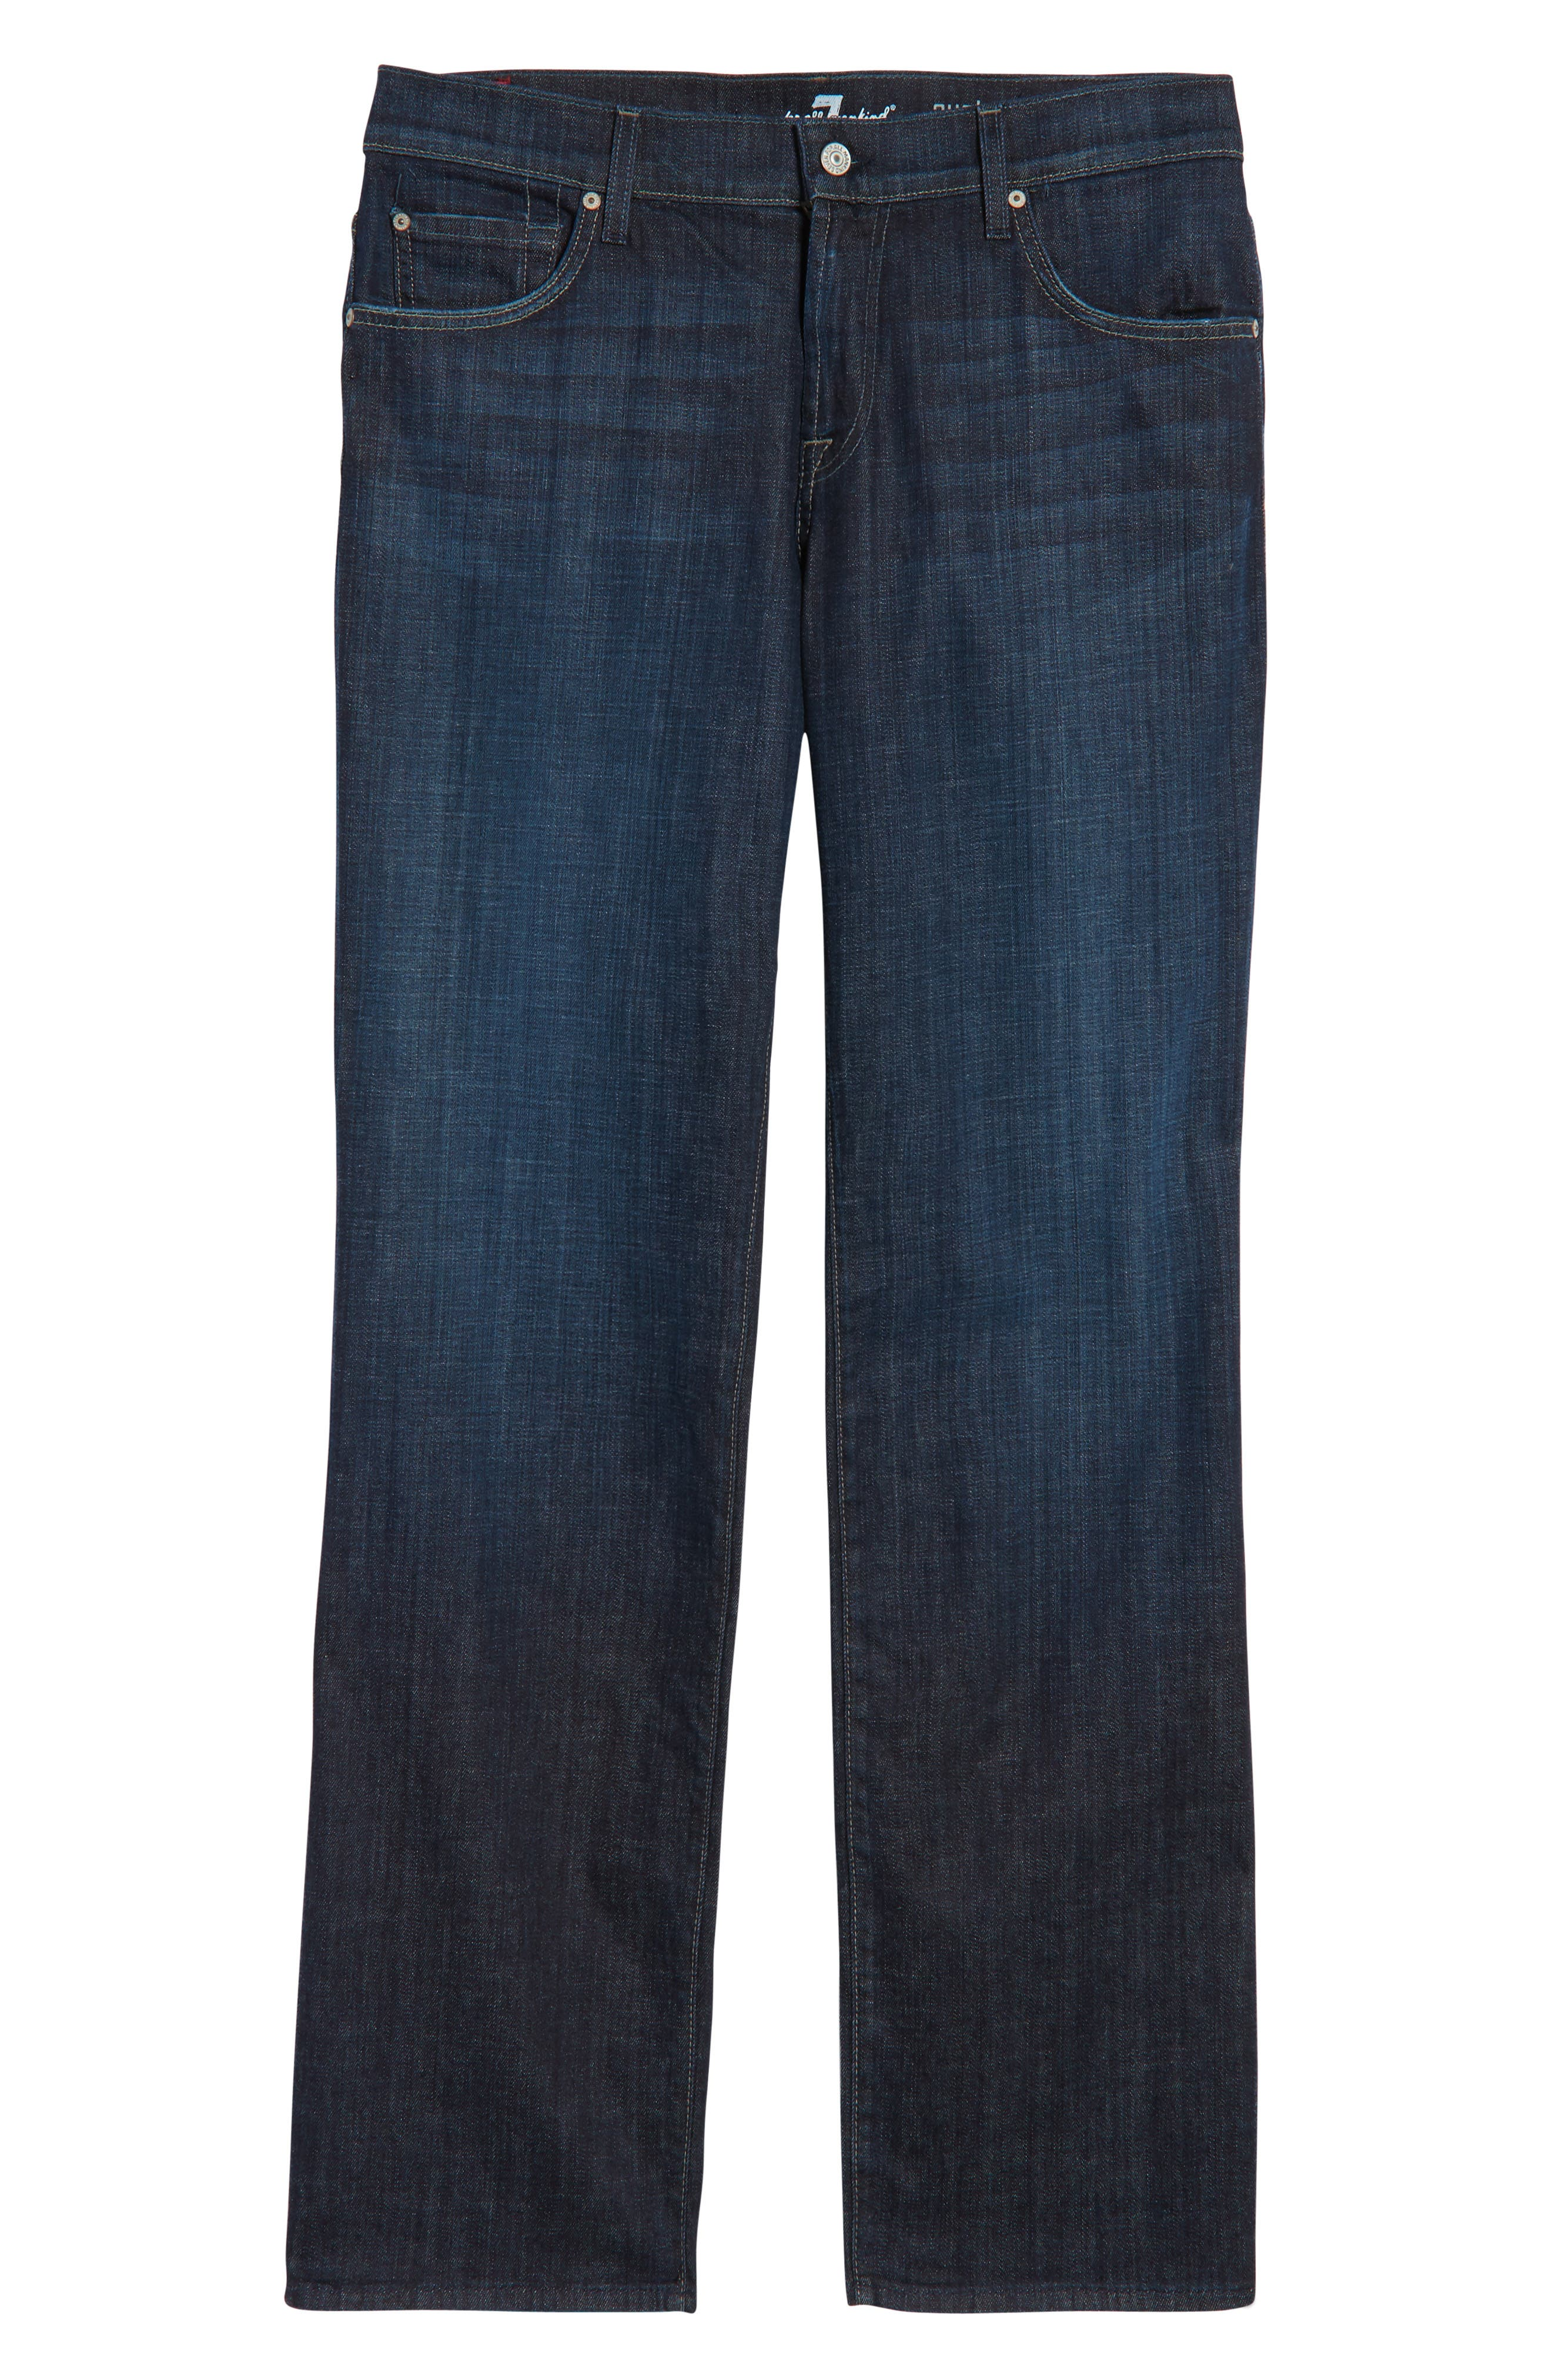 7 FOR ALL MANKIND<SUP>®</SUP>, Austyn Relaxed Straight Leg Jeans, Main thumbnail 1, color, LOS ANGELES DARK